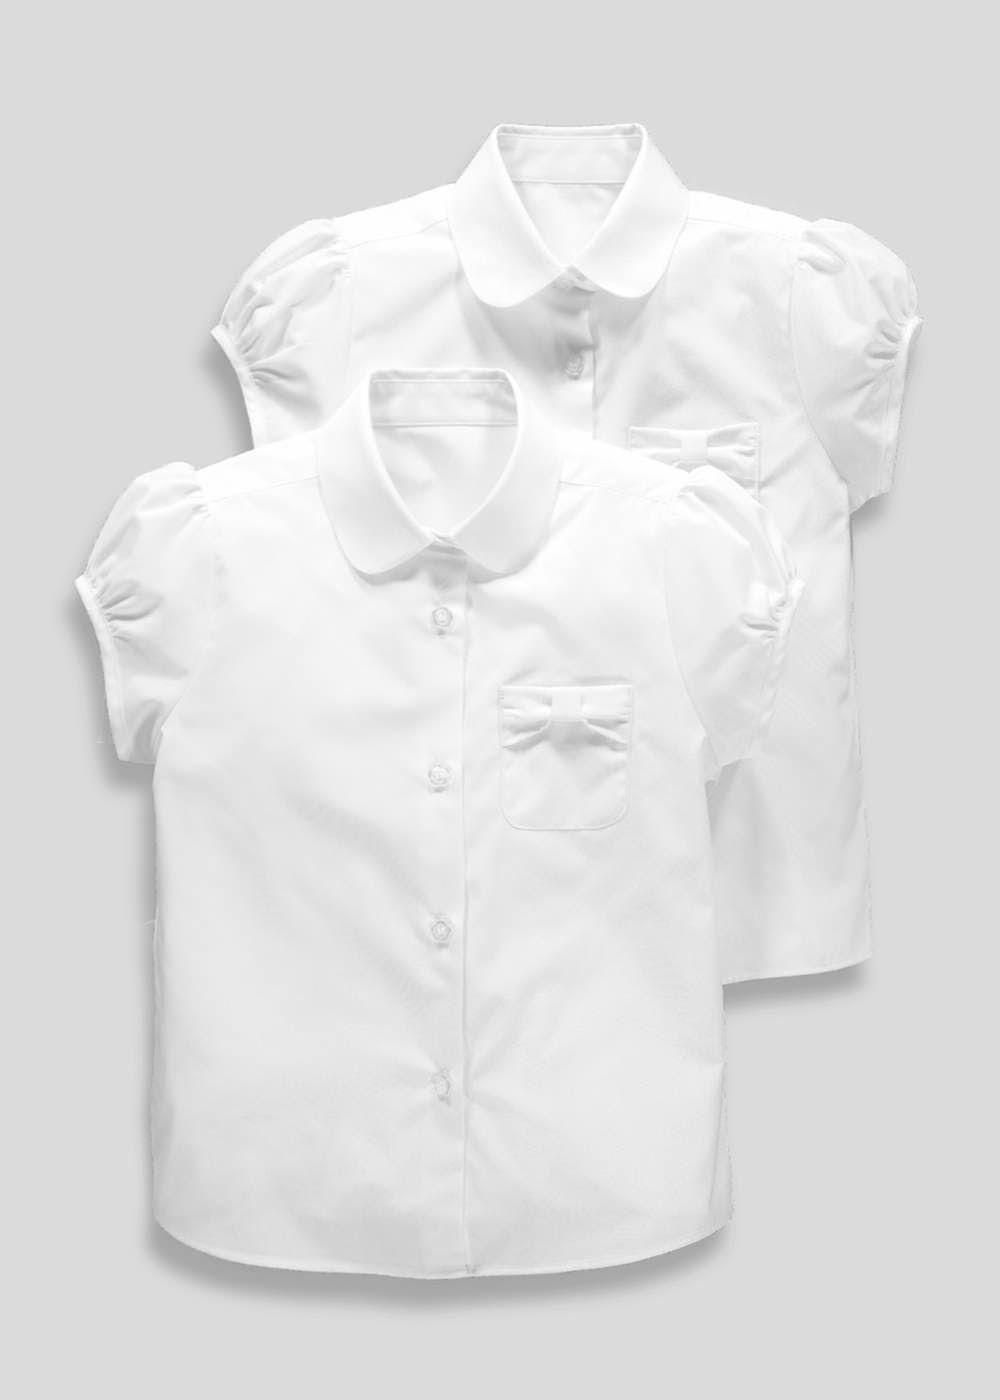 95082dc64 Girls pack of 2 short sleeve minimum iron school blouses in white with bow  pocket detail.